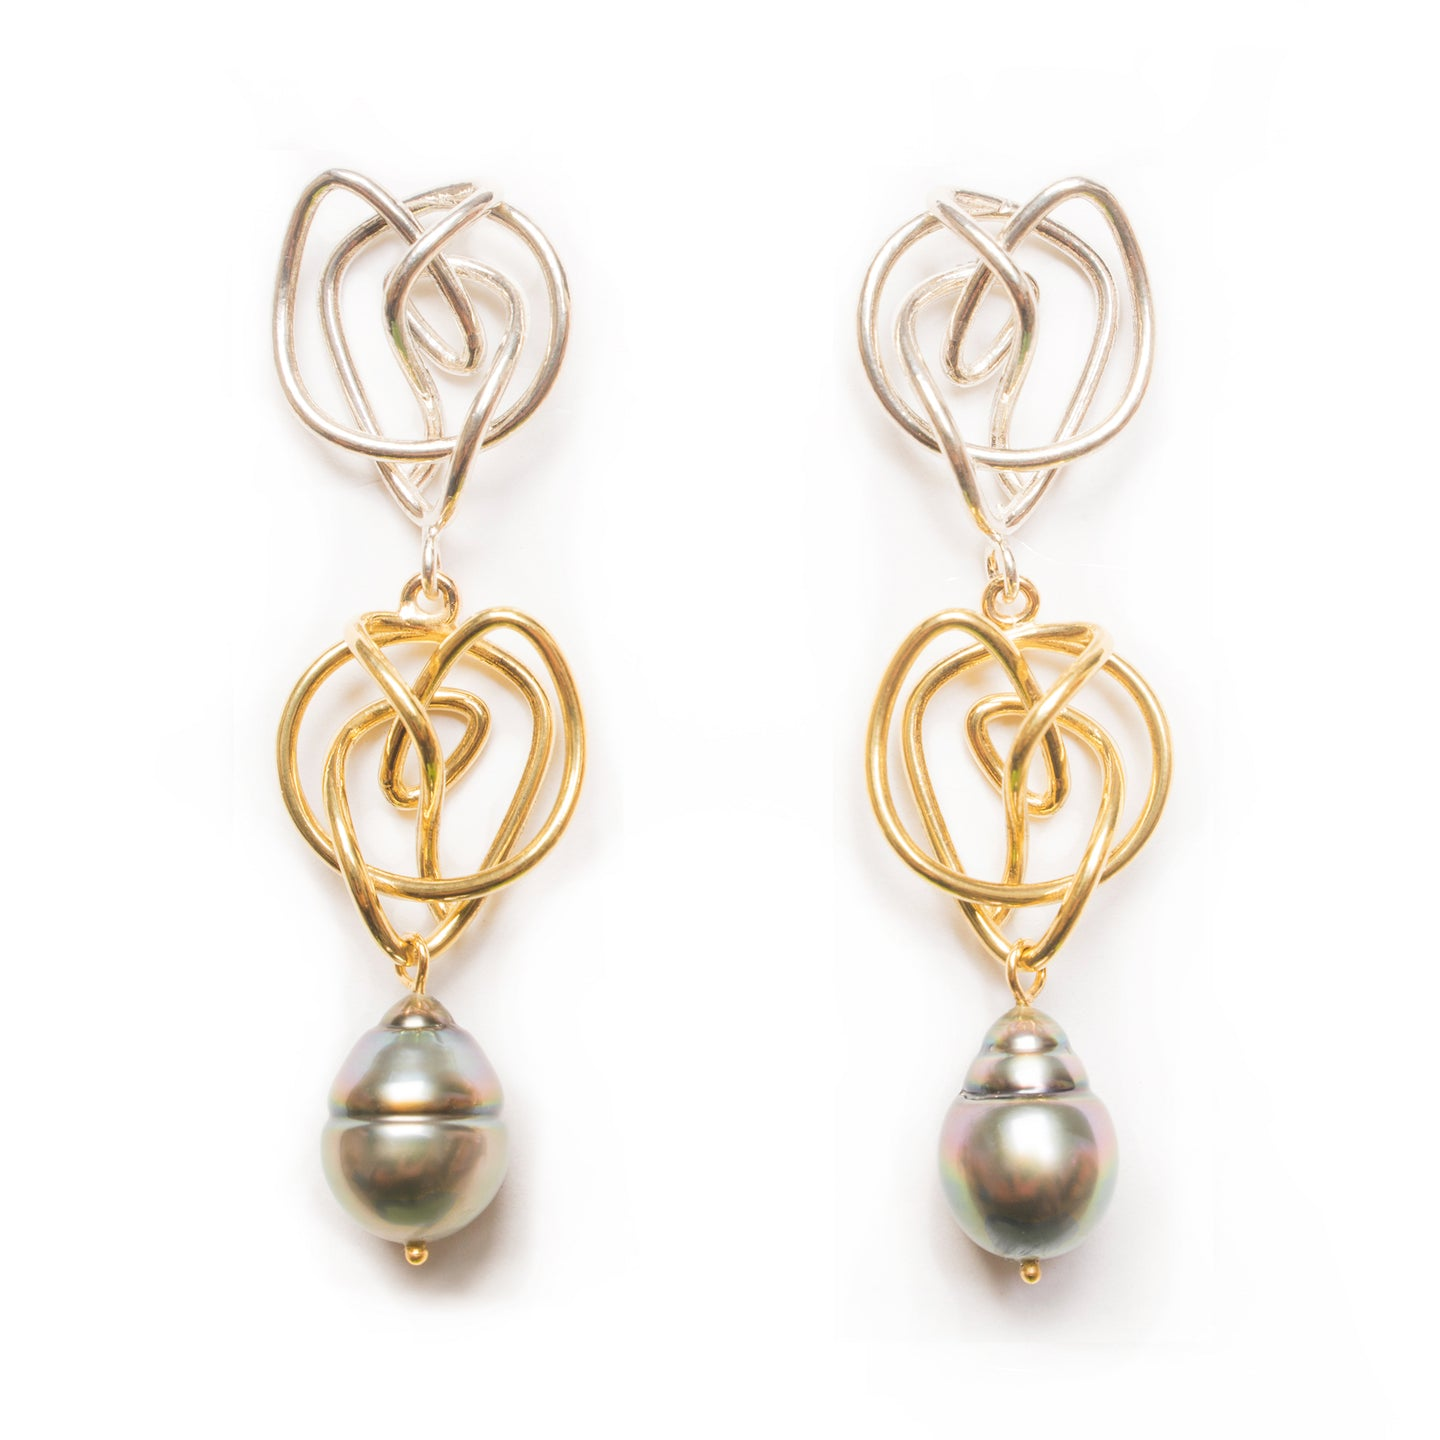 18kt Gold & Sterling Silver Endless Love Earrings with Tahitian Pearls